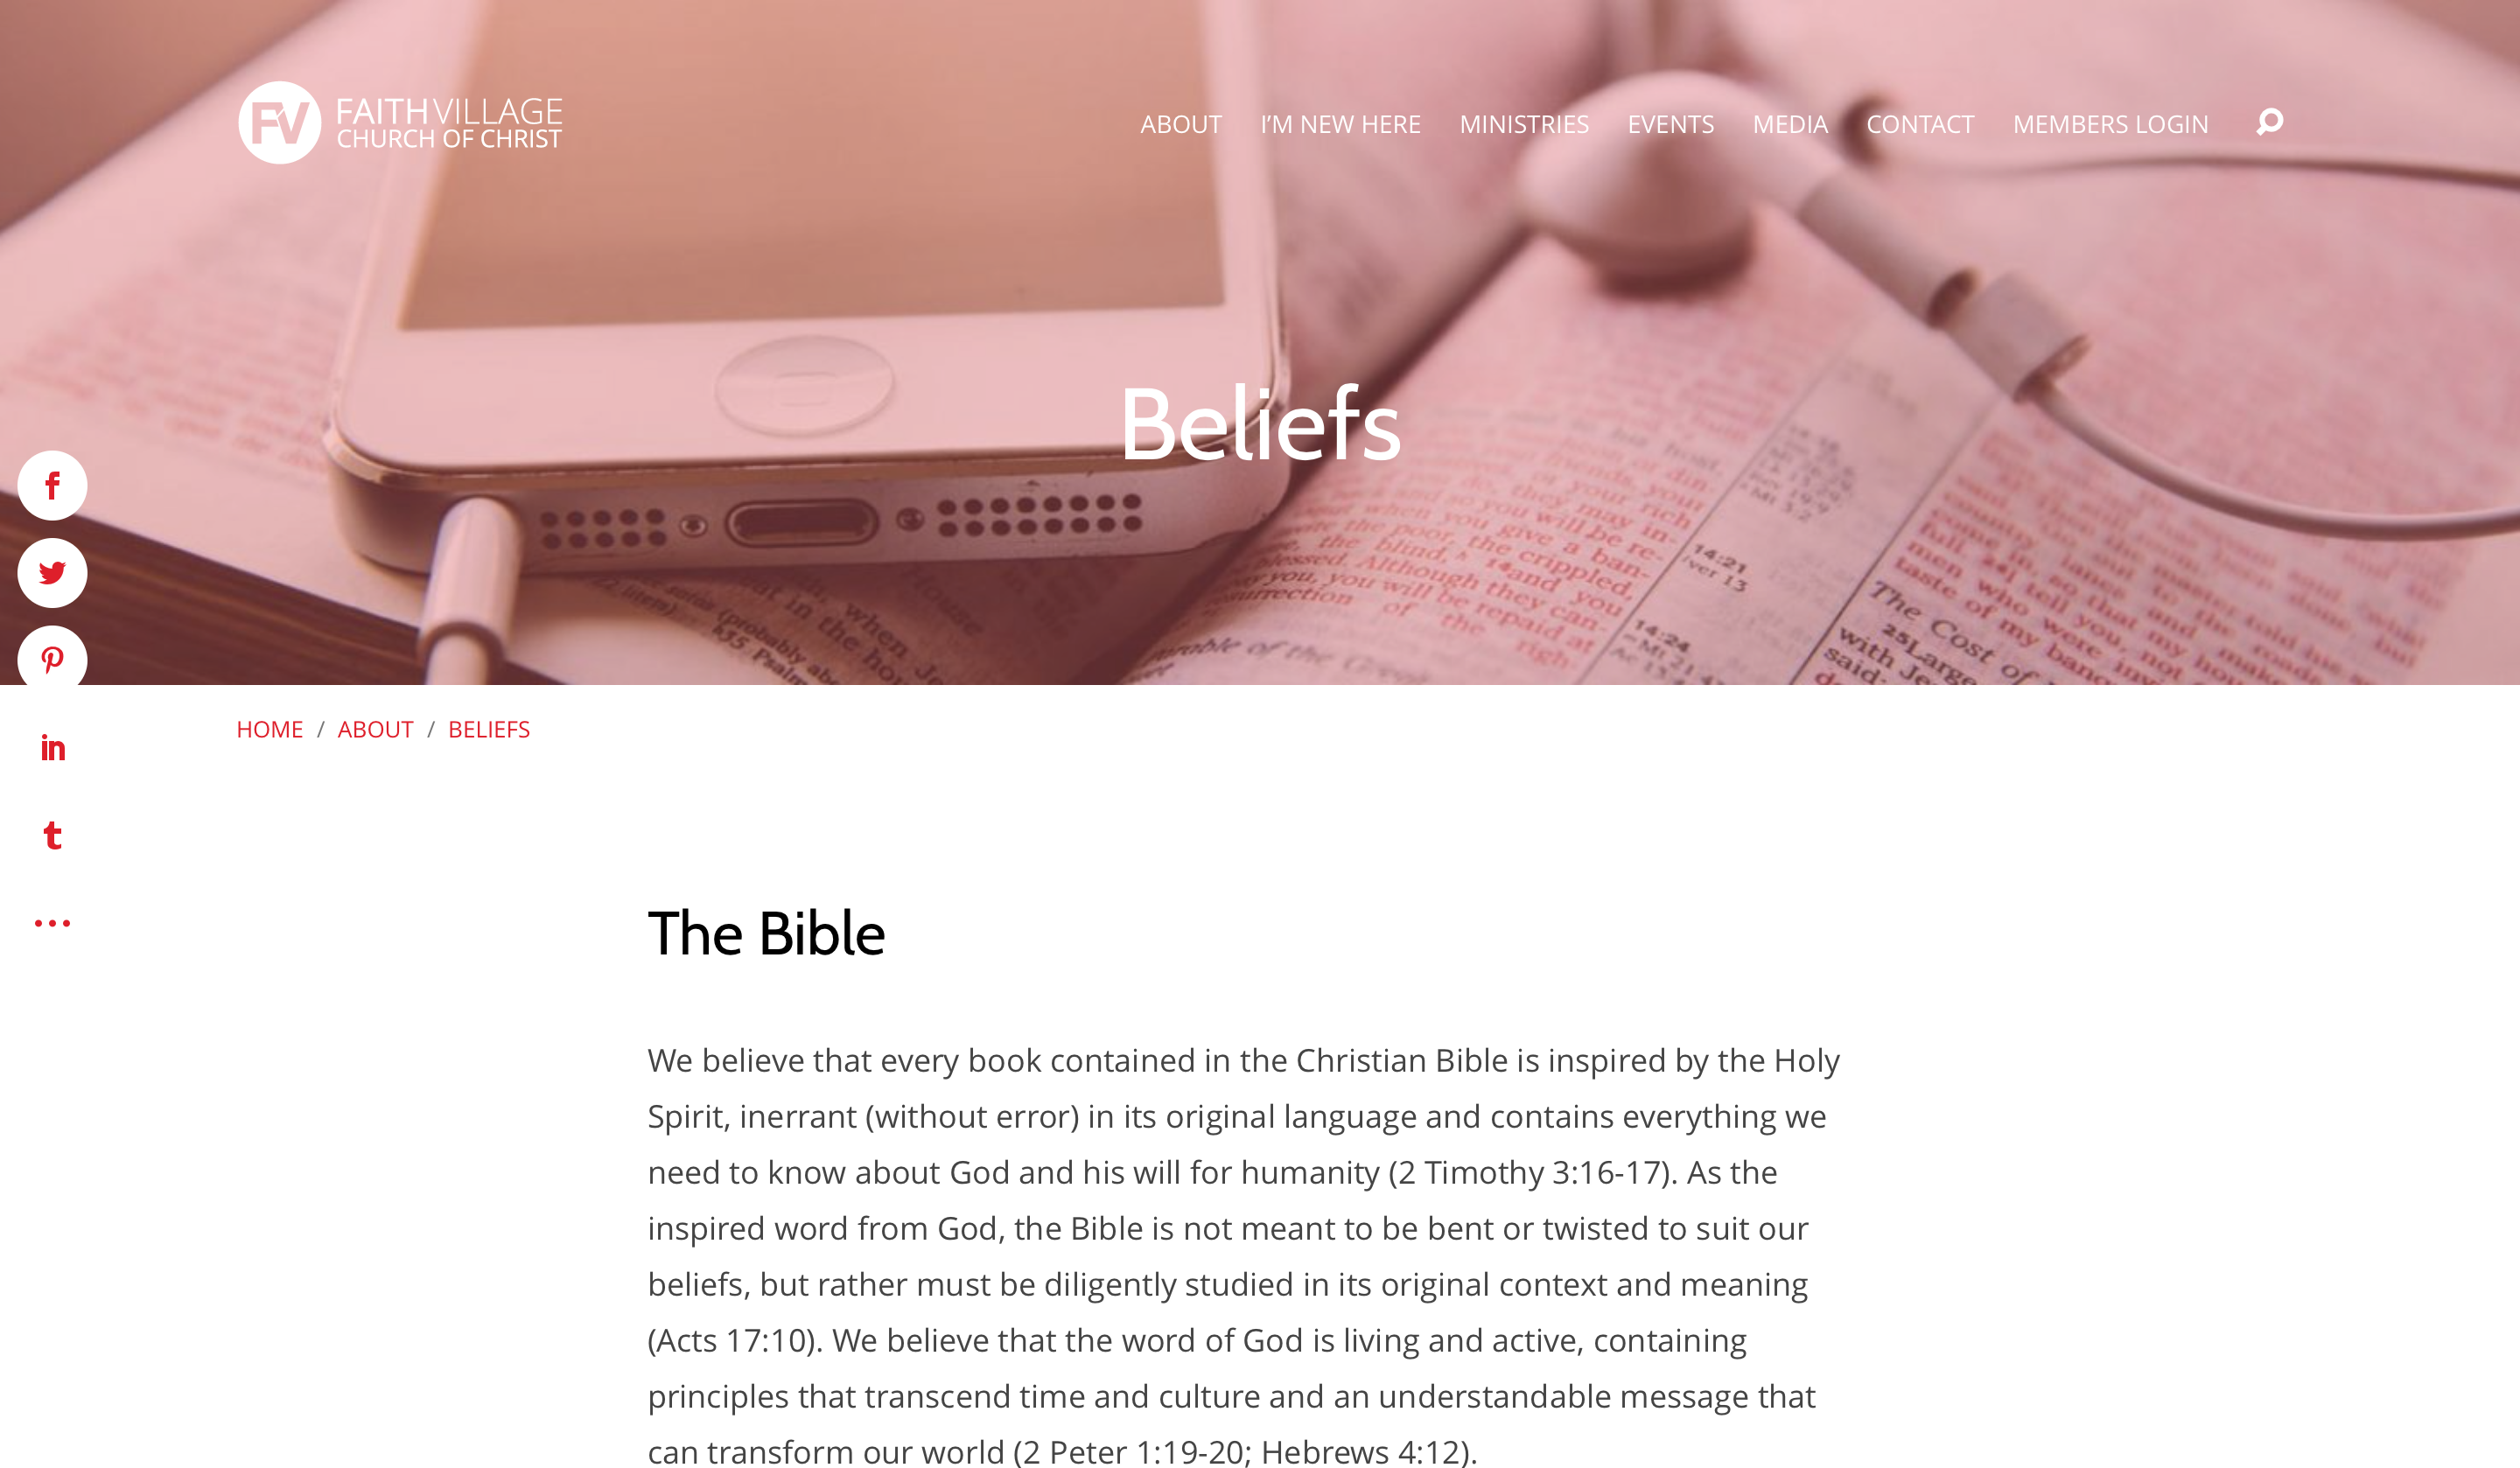 Faith Village Website - Beliefs Page